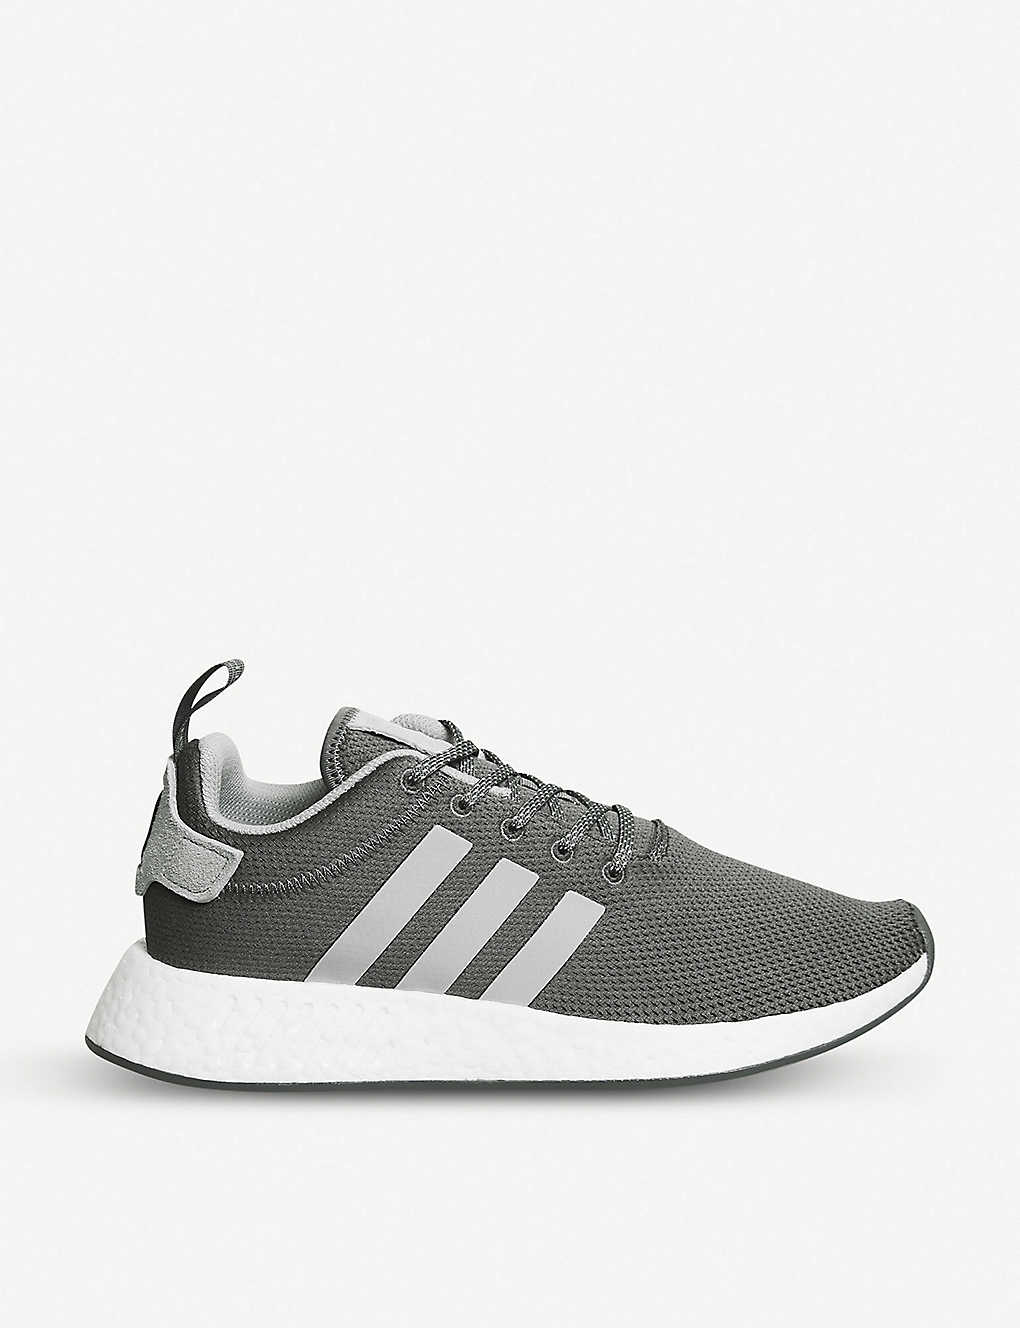 Nmd R2 Trainers